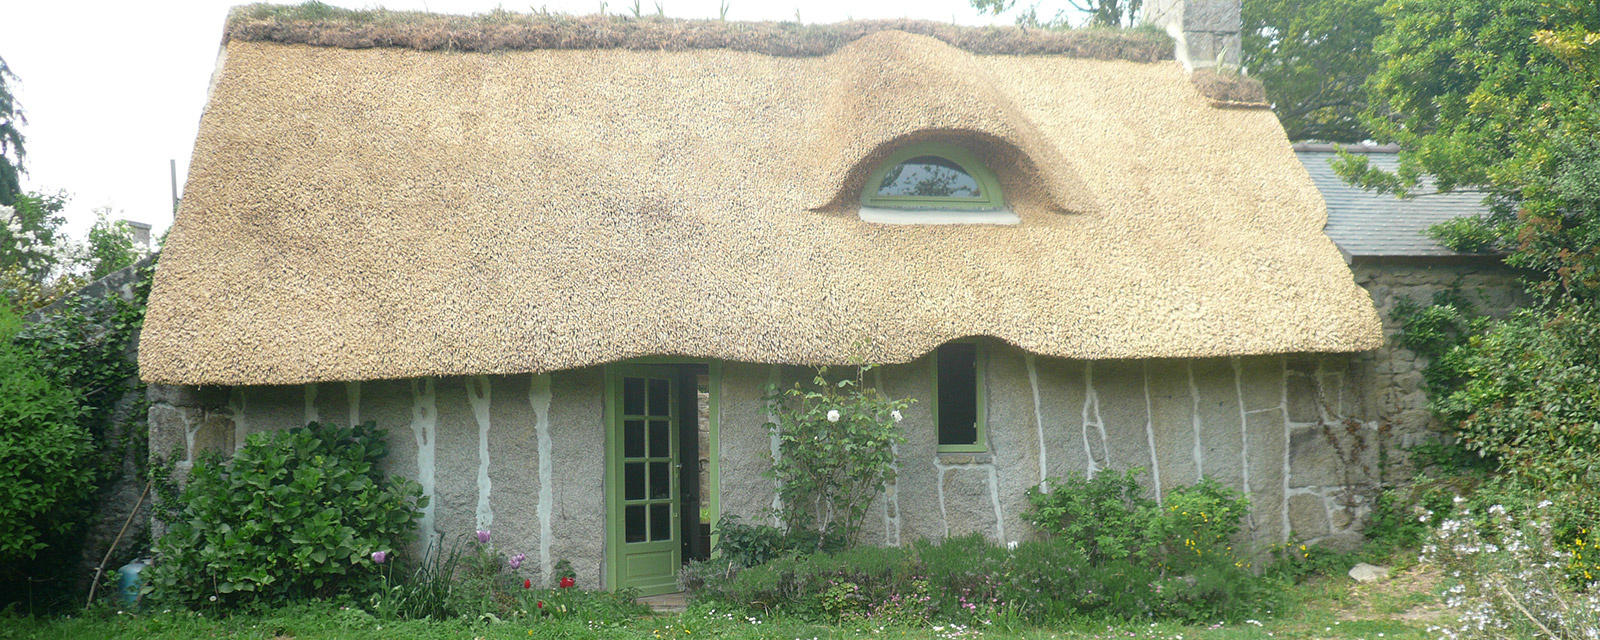 The thatched house of Kerochet